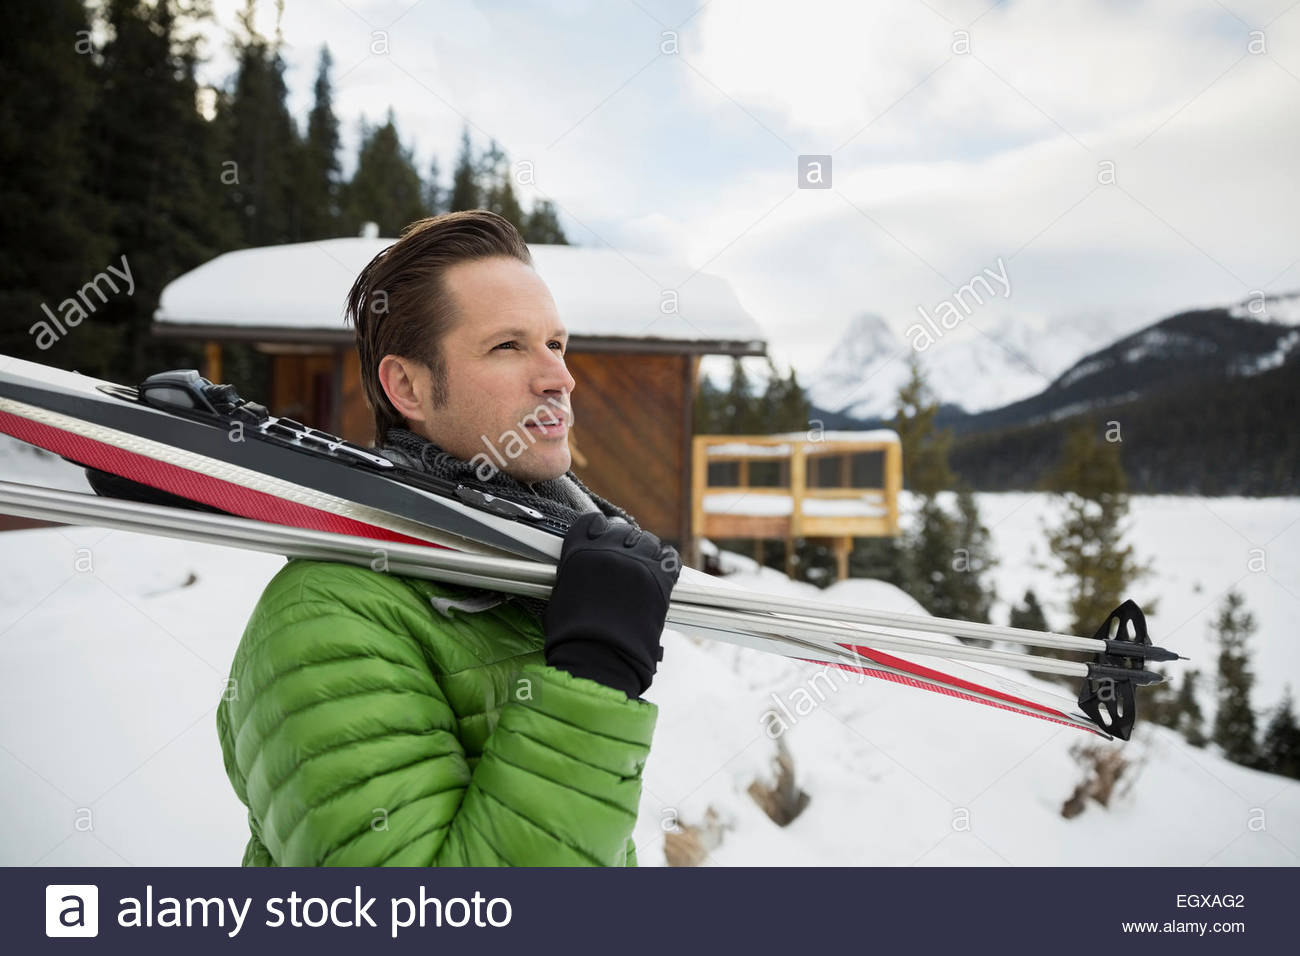 Pensive man holding cross-country skis in snow - Stock Image